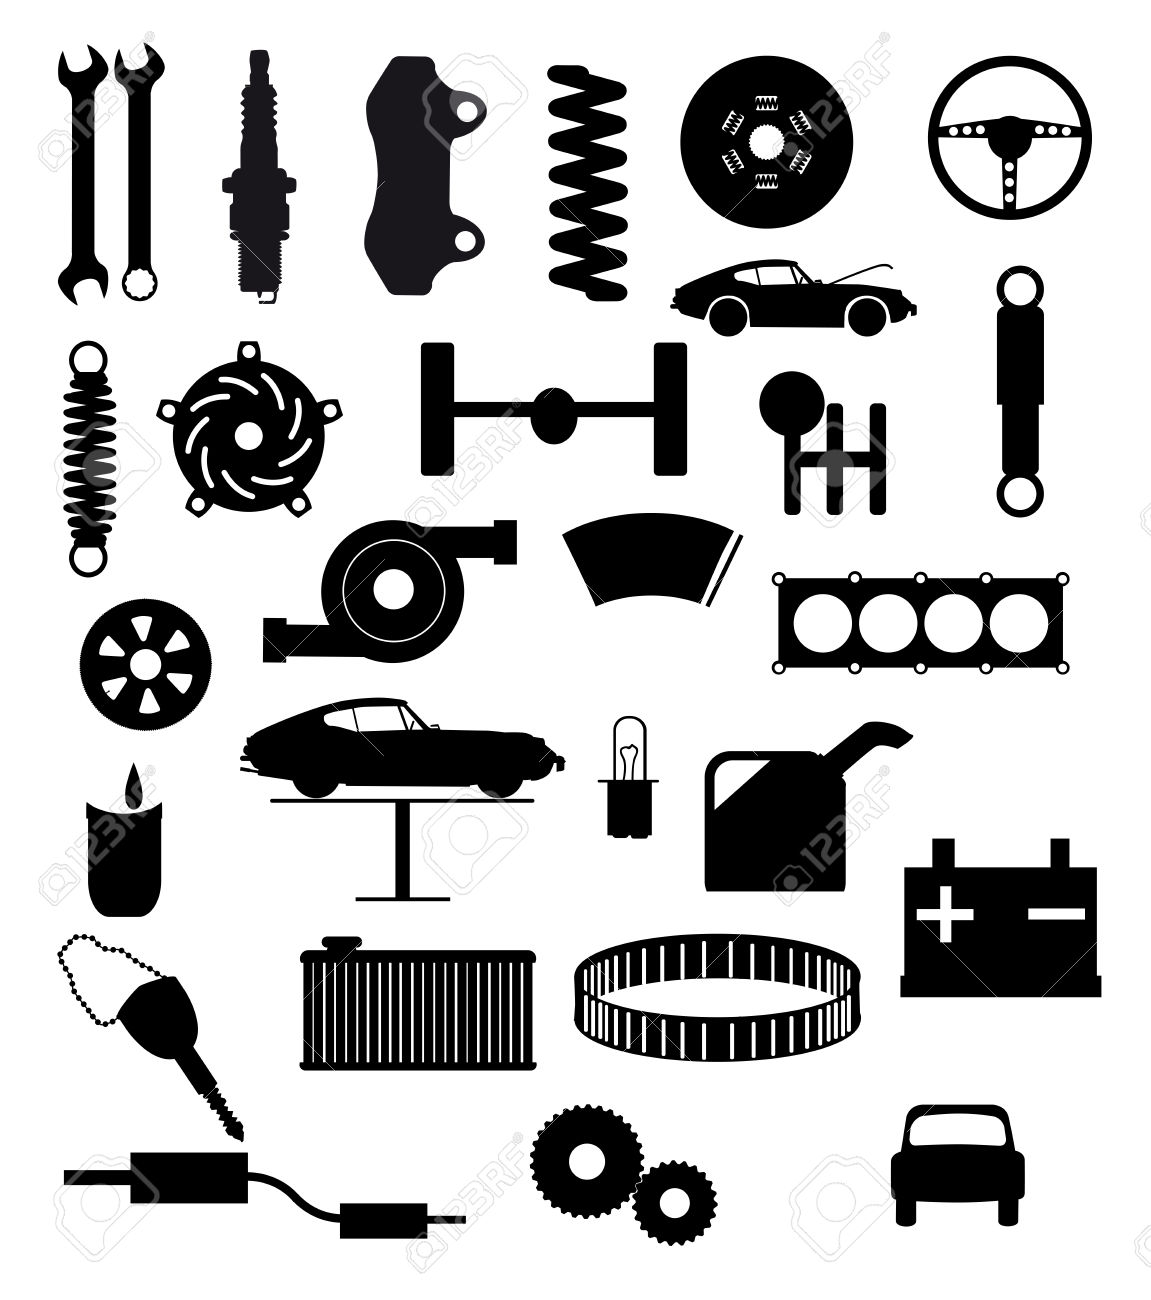 179 Shift Lever Stock Illustrations, Cliparts And Royalty Free.